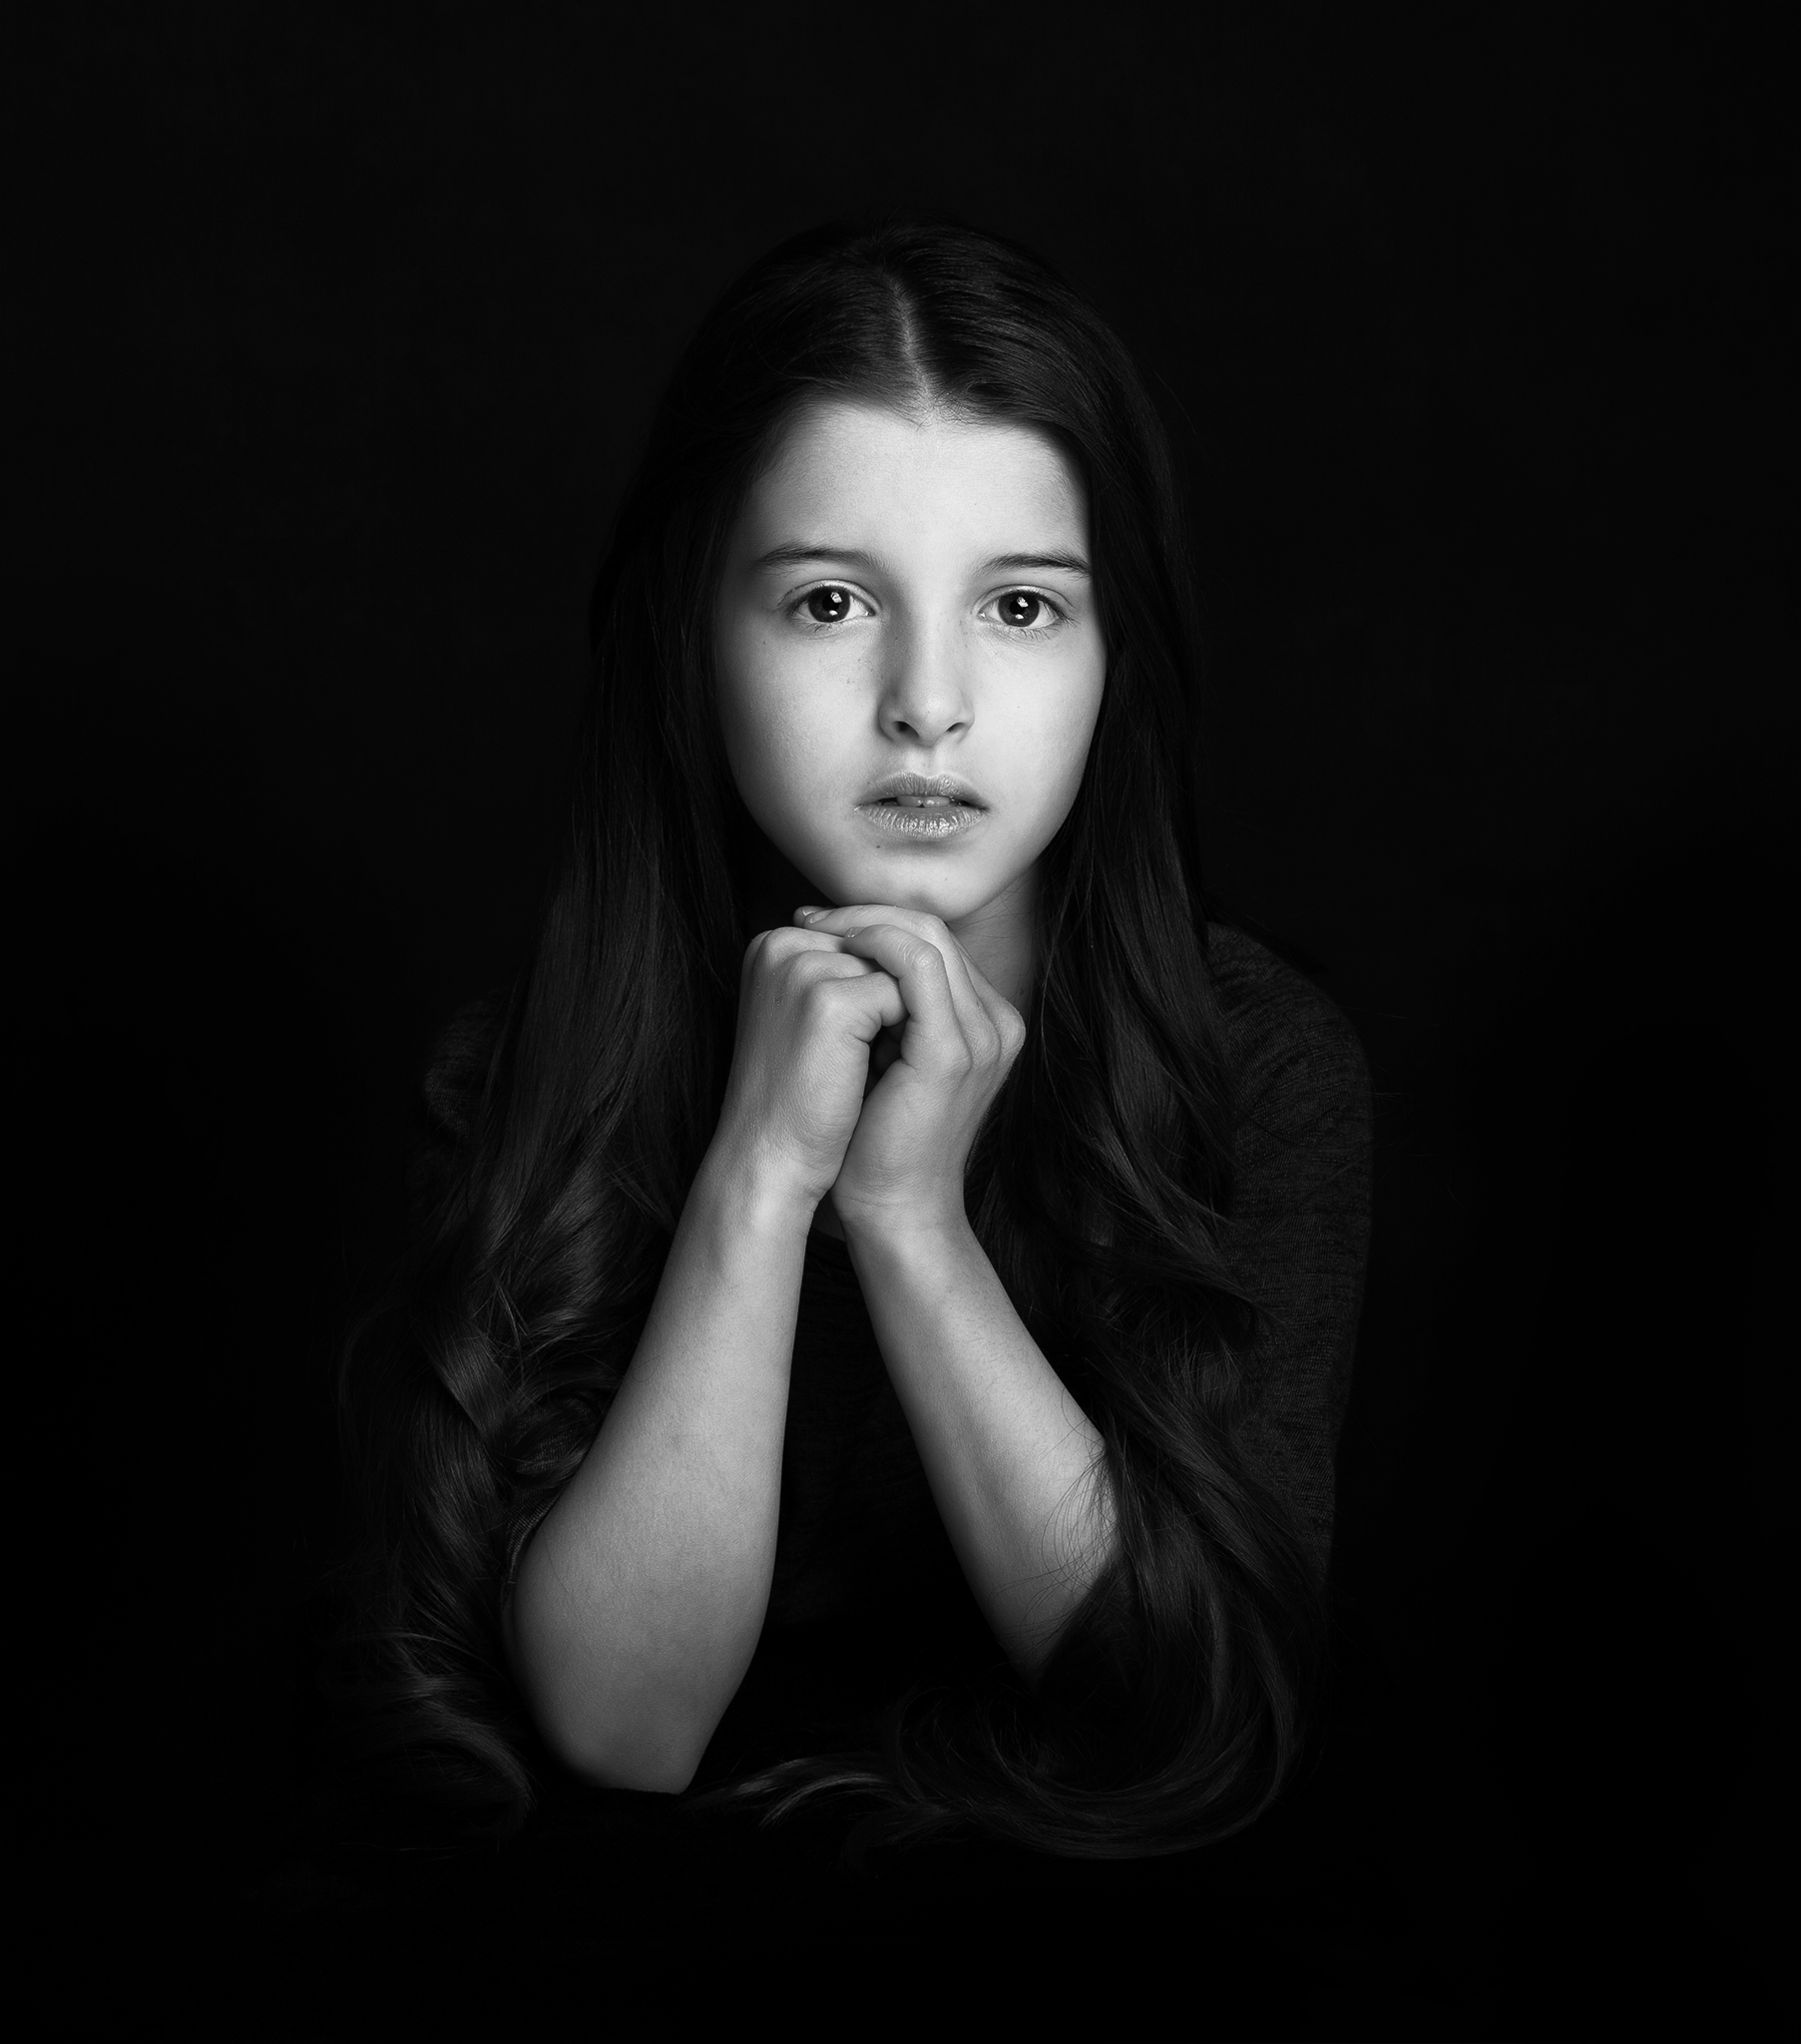 Elizabethg_fineart_portrait_photographer_kingslangley_hertfordshire_sophia_3_9419.jpg